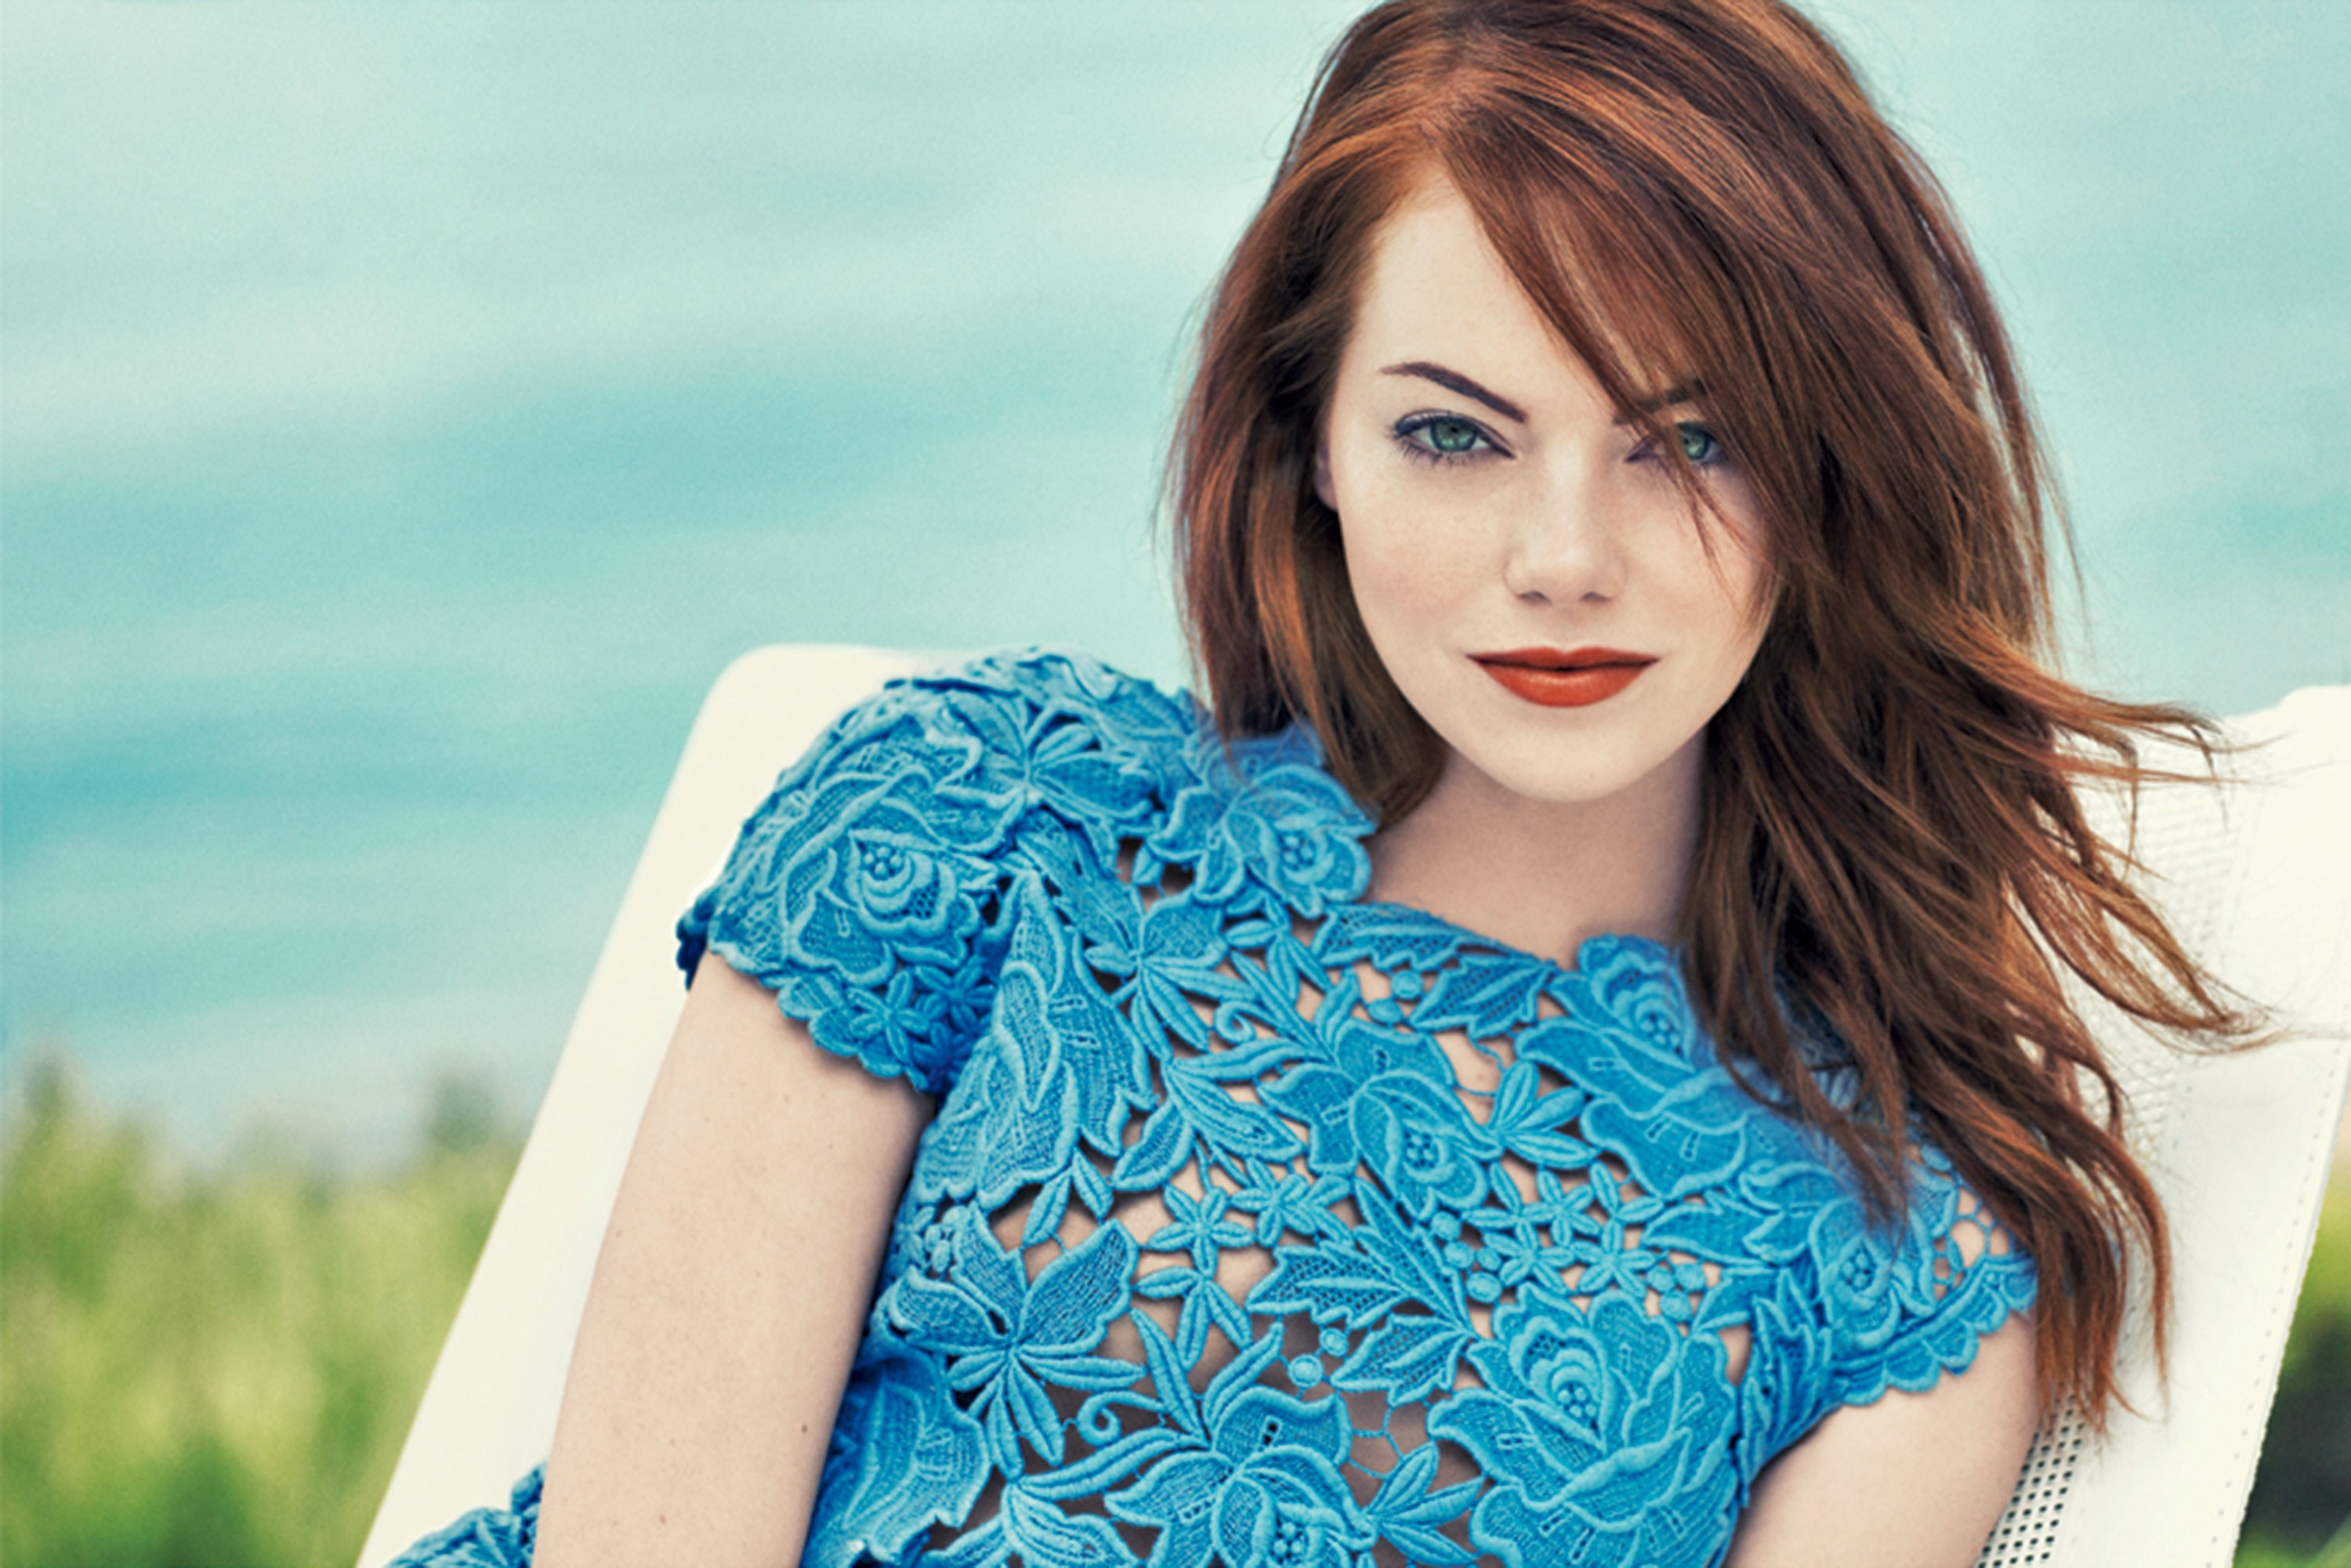 Emma Stone in a blue dress - Emma Stone Net Worth, Movies, Family, Boyfriends, Pictures and Wallpapers